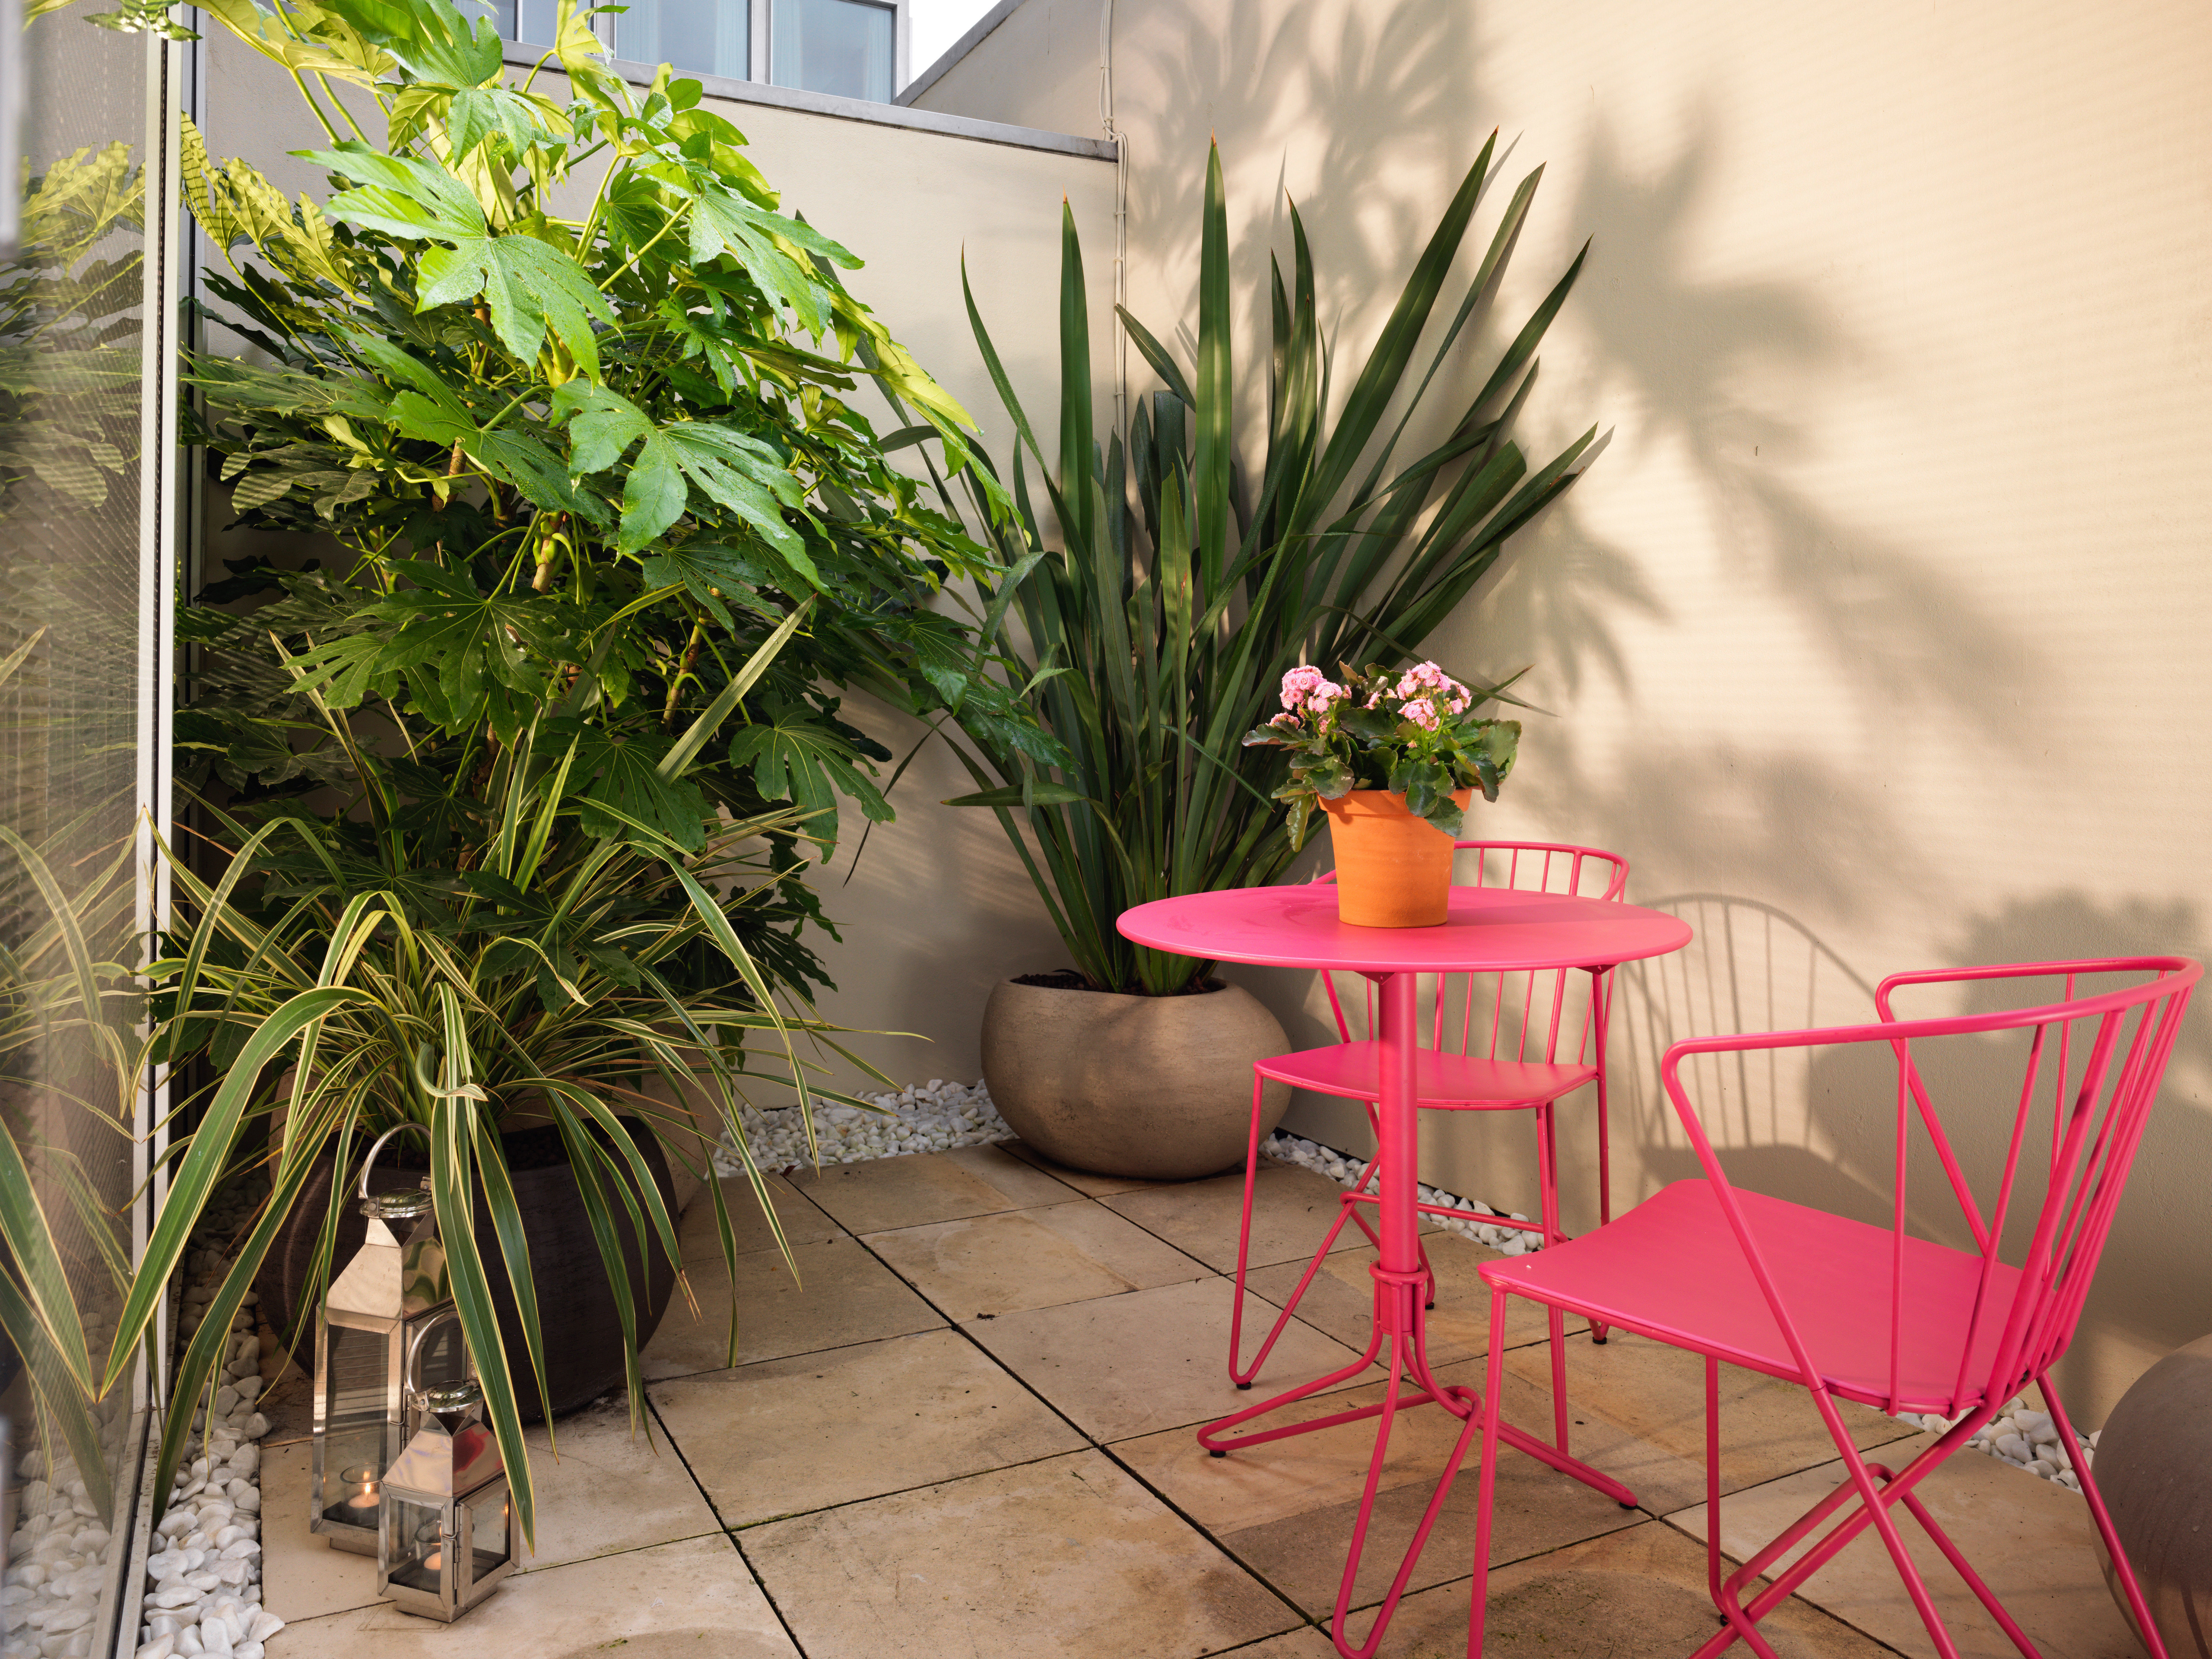 Boutique Lounge Patio plant property home backyard Garden dining table